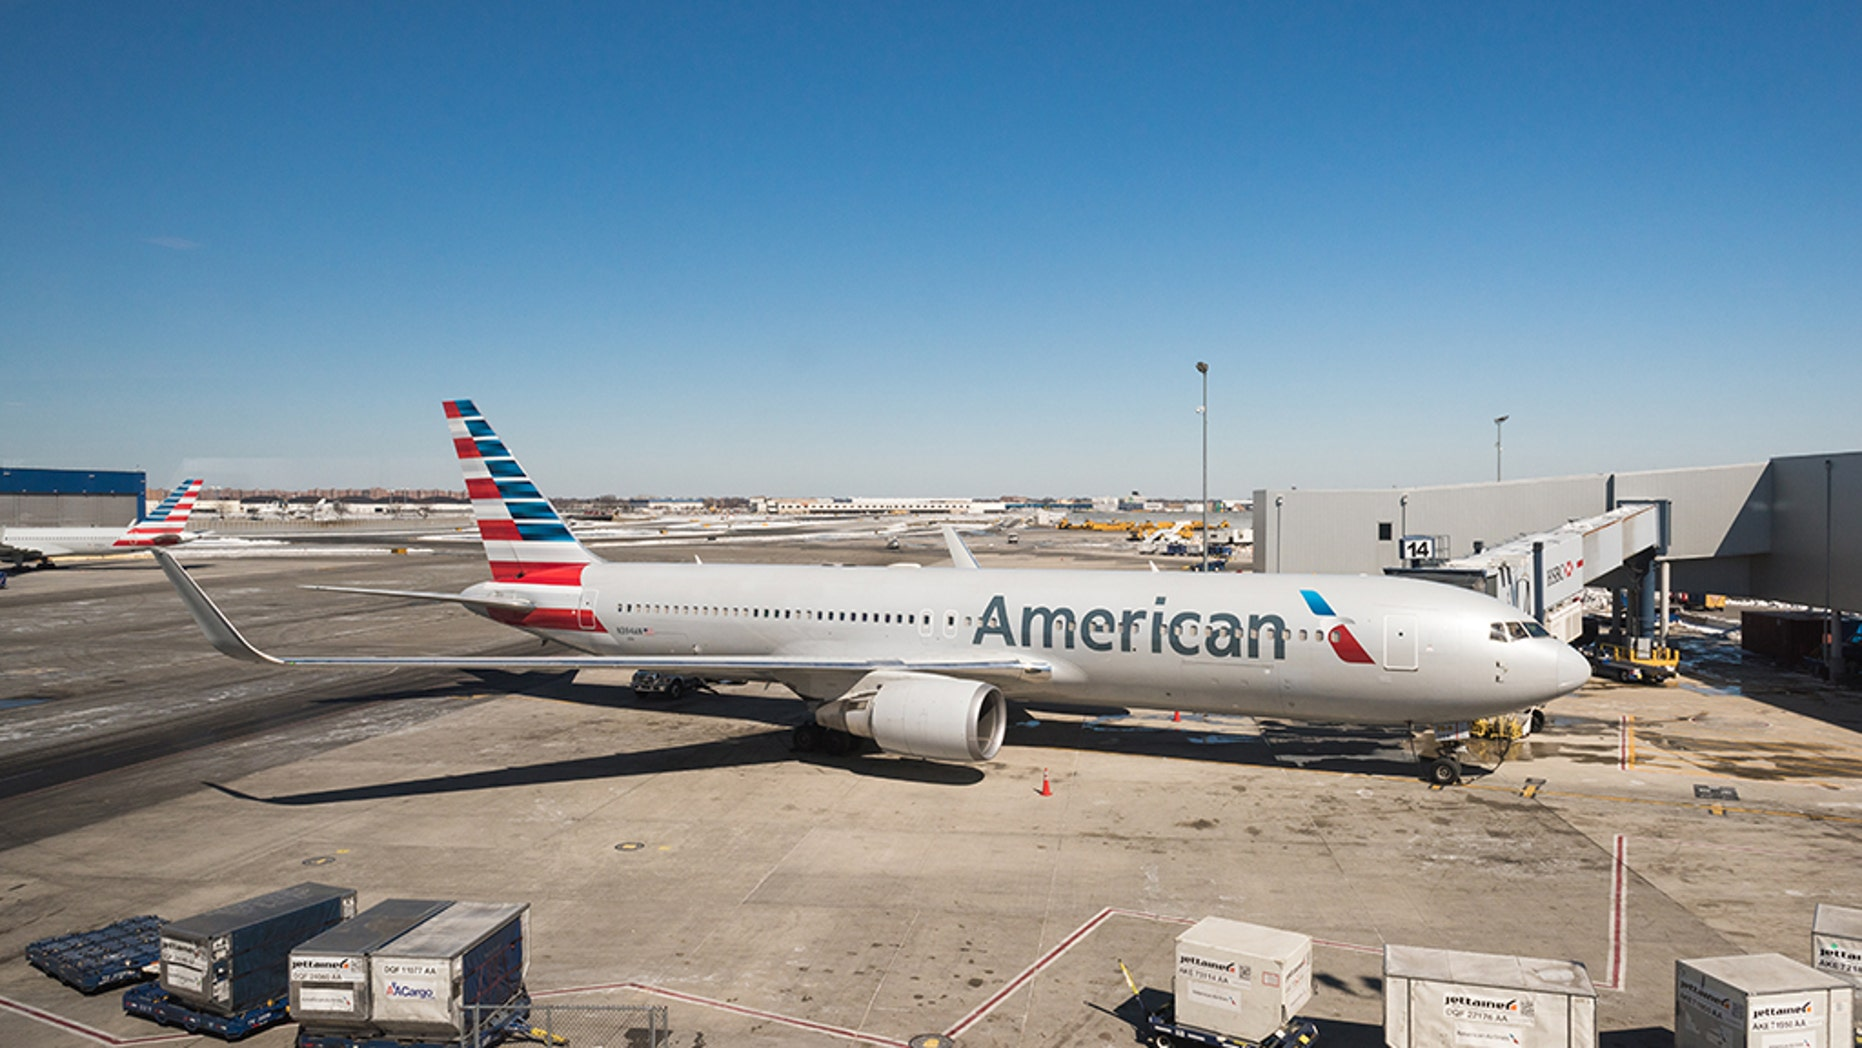 Family kicked off American Airline flight due to complaints about body odor